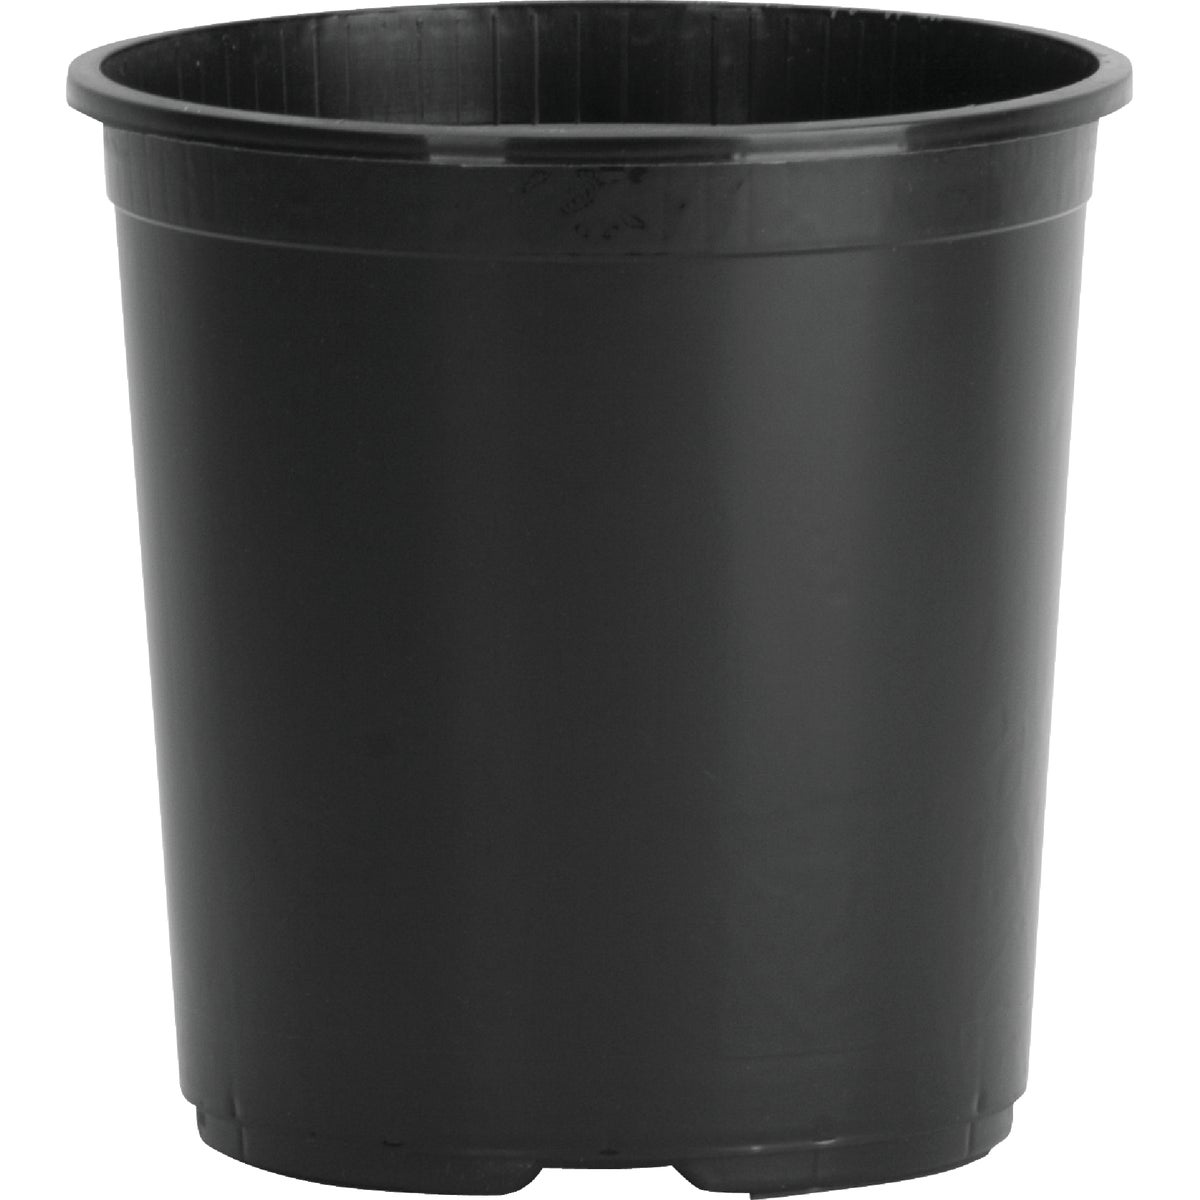 3 GAL BLACK SQUAT POT - NCS03000G18 by Myers Industries Inc